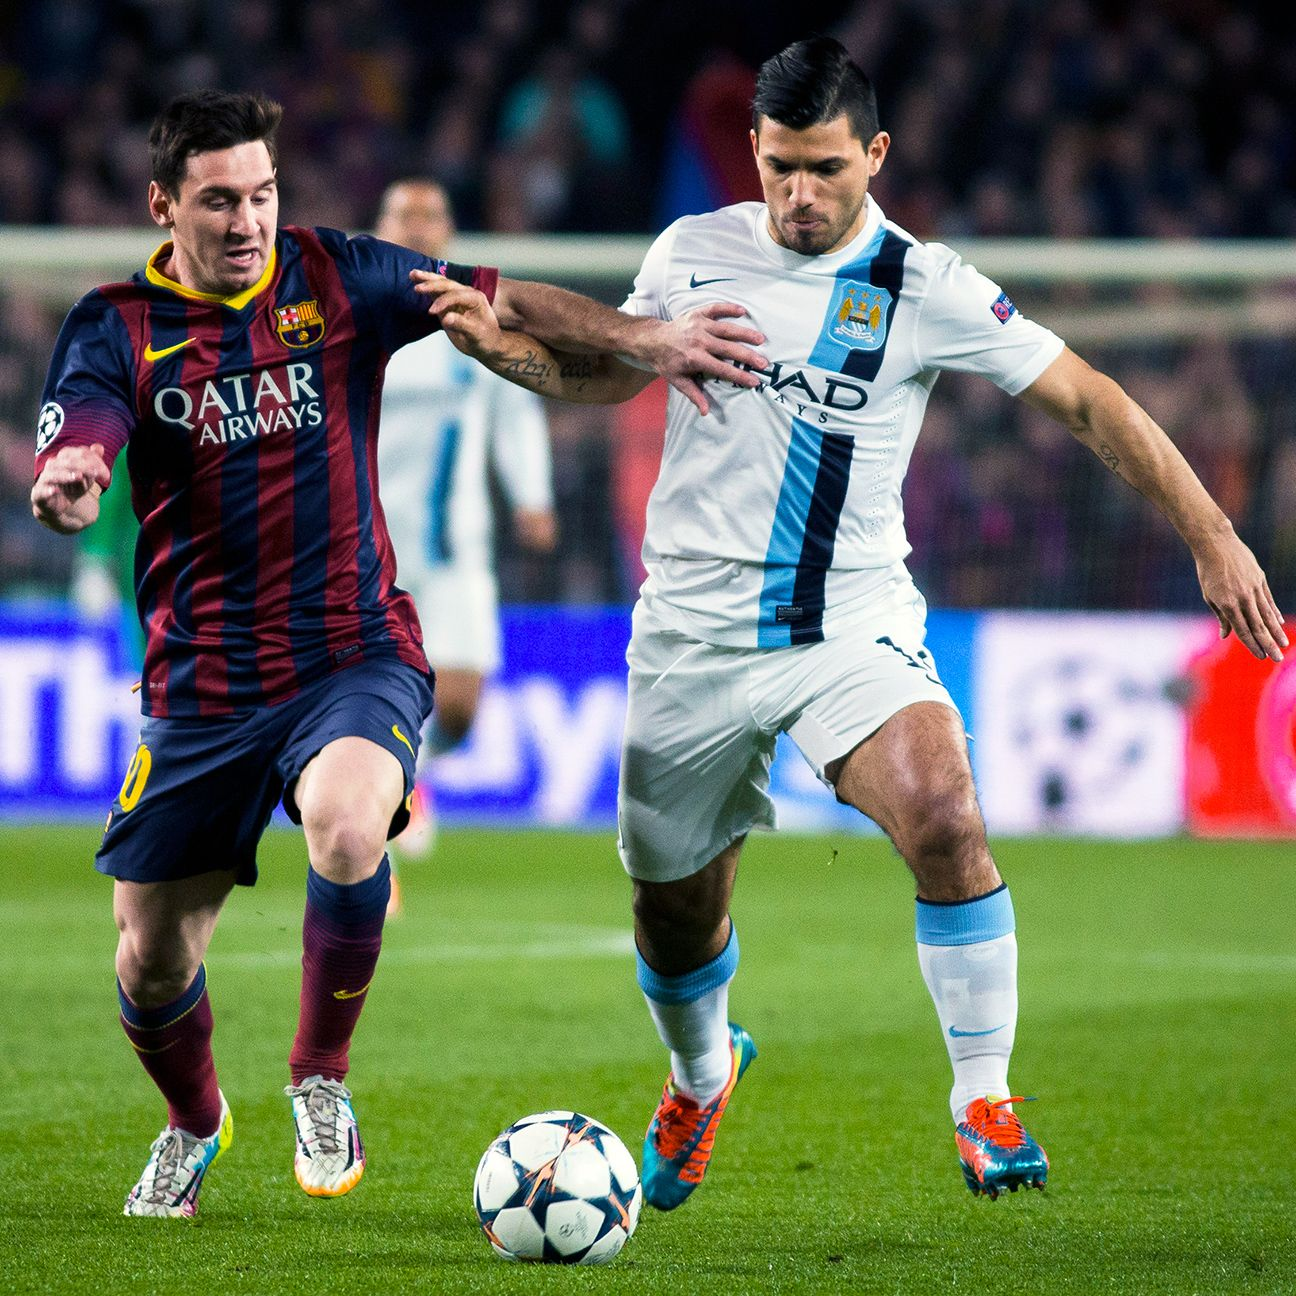 Who will come out on top when Lionel Messi and Barcelona take on Manchester City and Sergio Aguero?